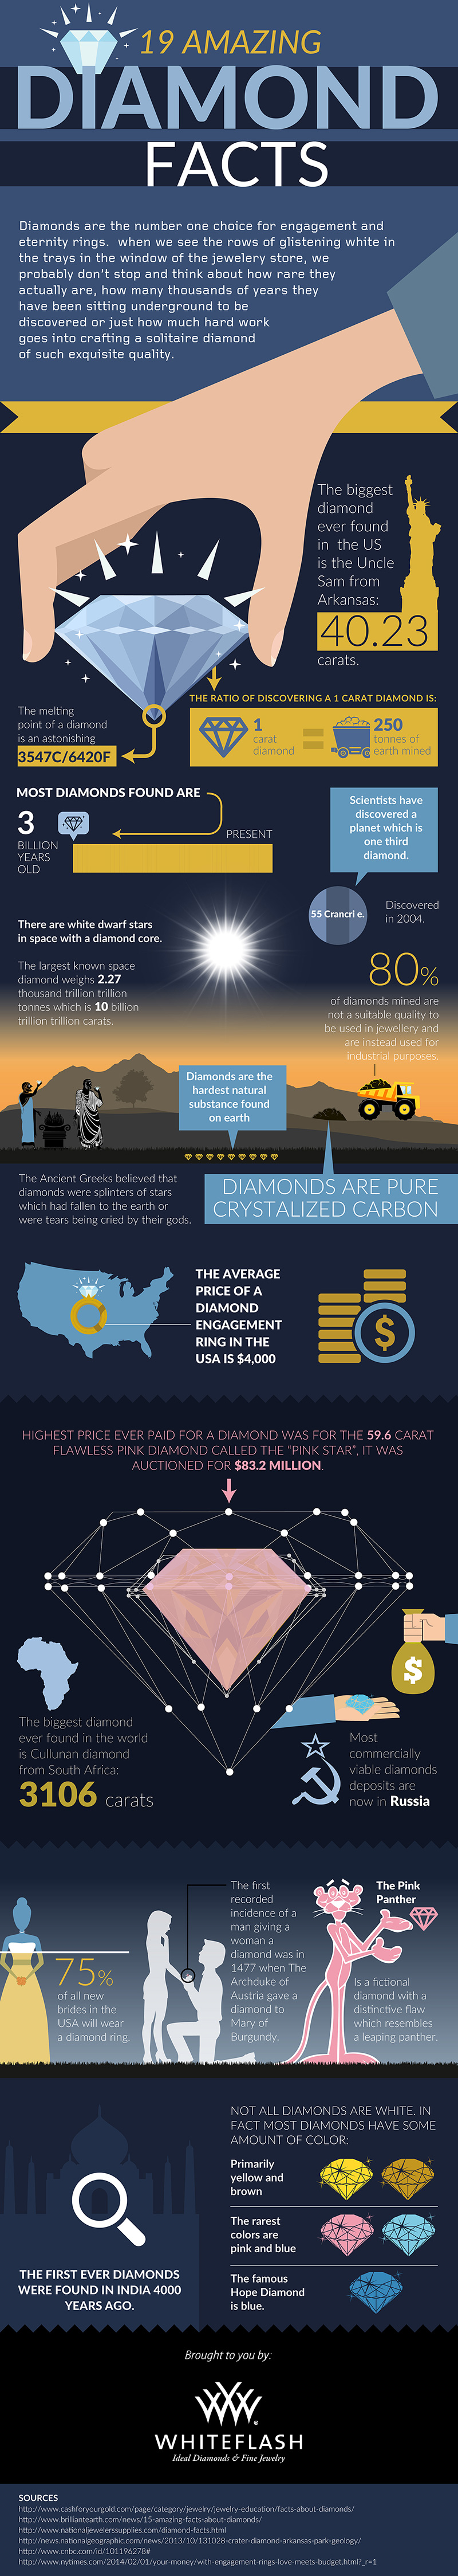 amazing-diamond-facts-infographic-by-whiteflash